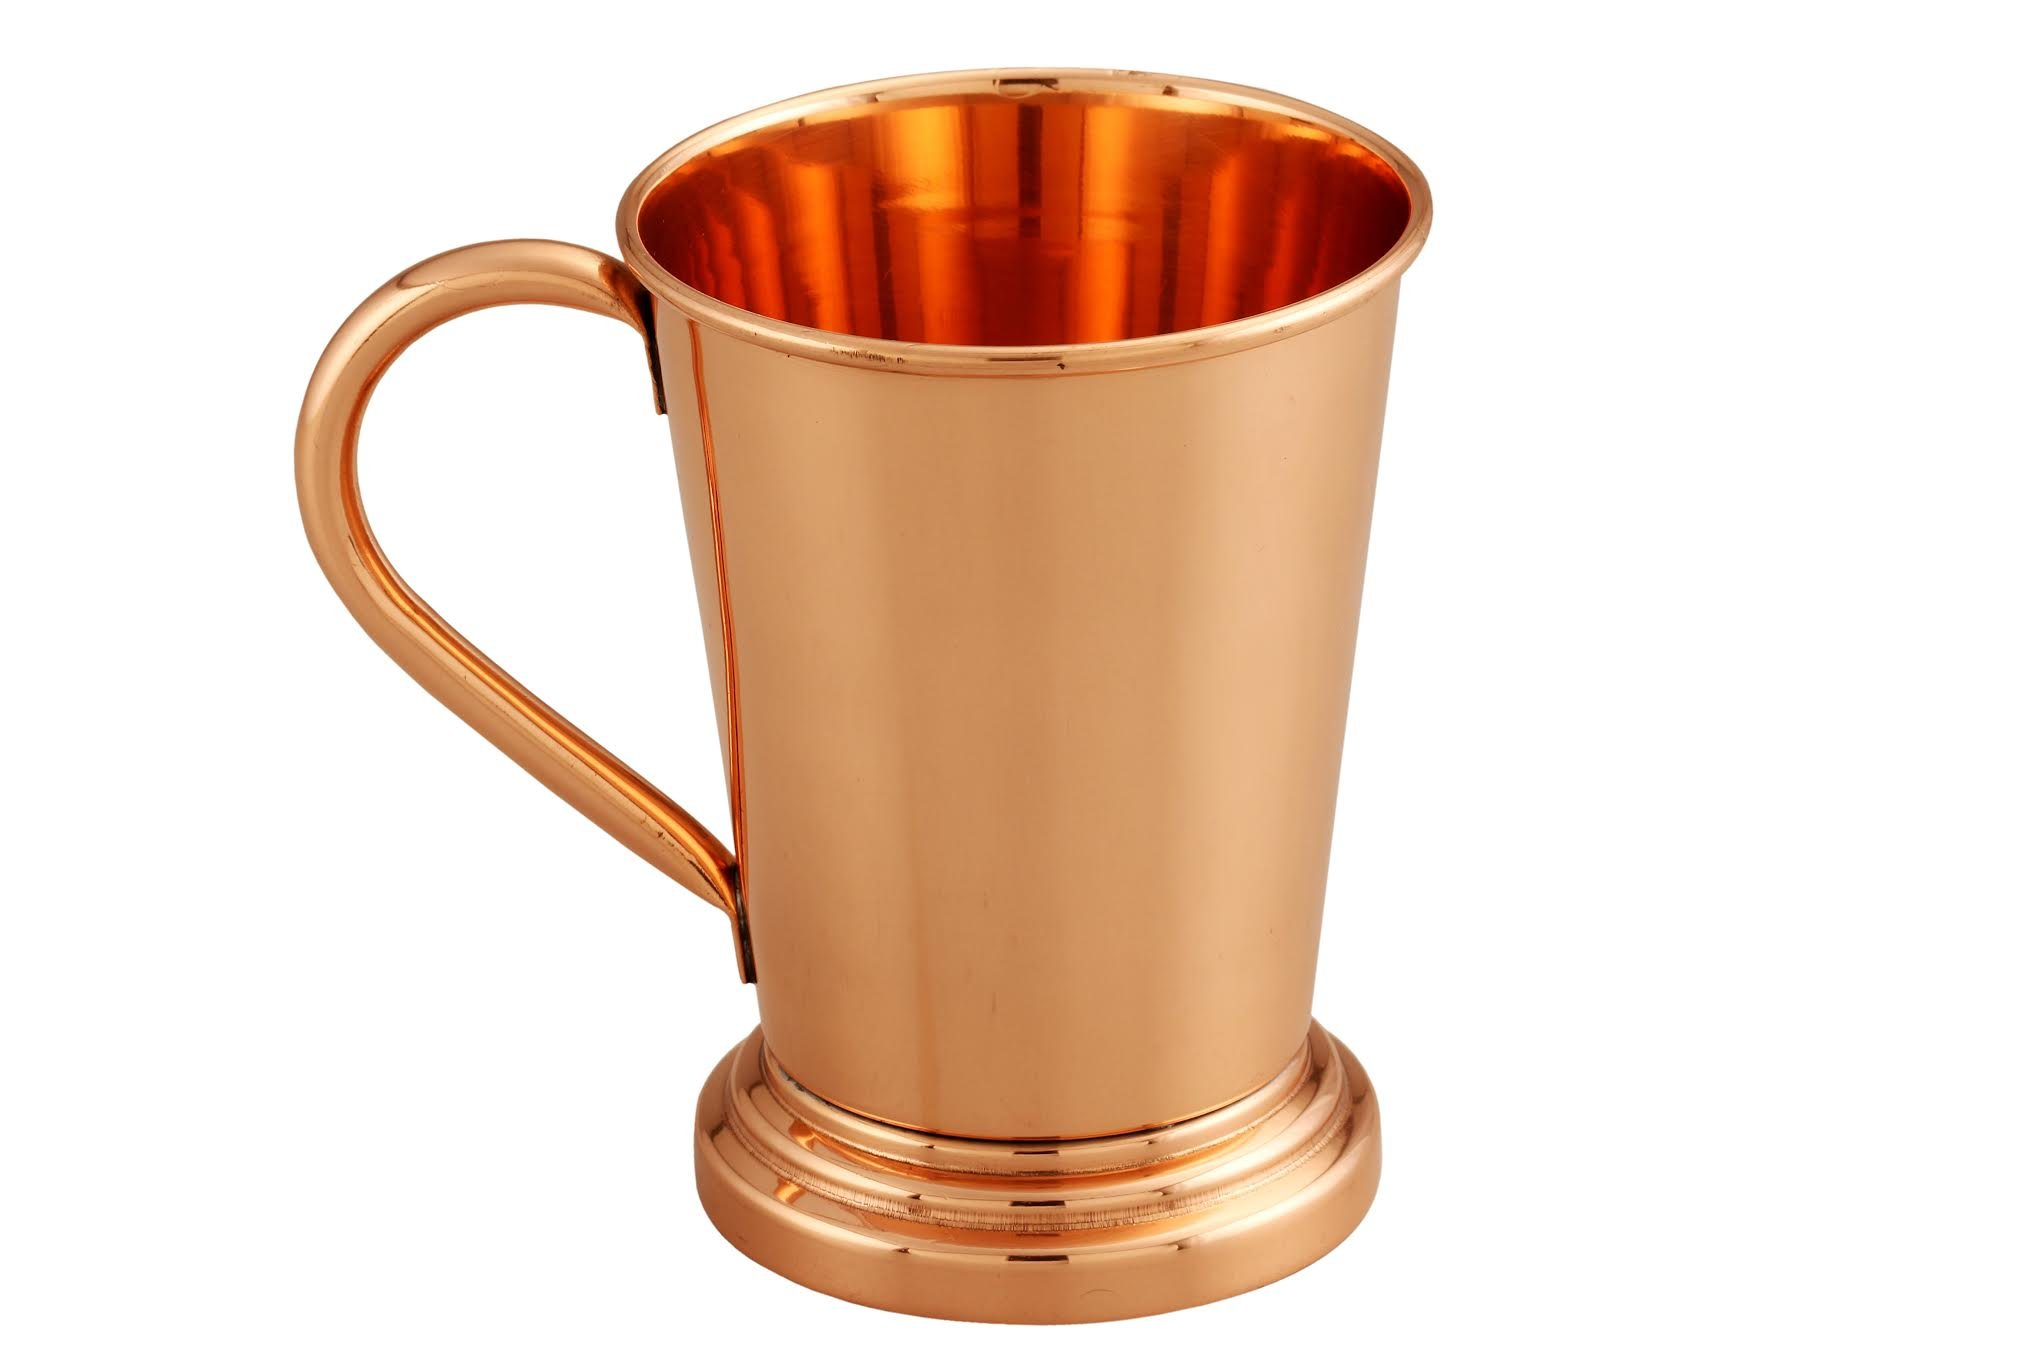 Melange 100% Authentic Copper Artisan Collection Moscow Mule Mug, Size-16 Oz, Set of 2 Mugs